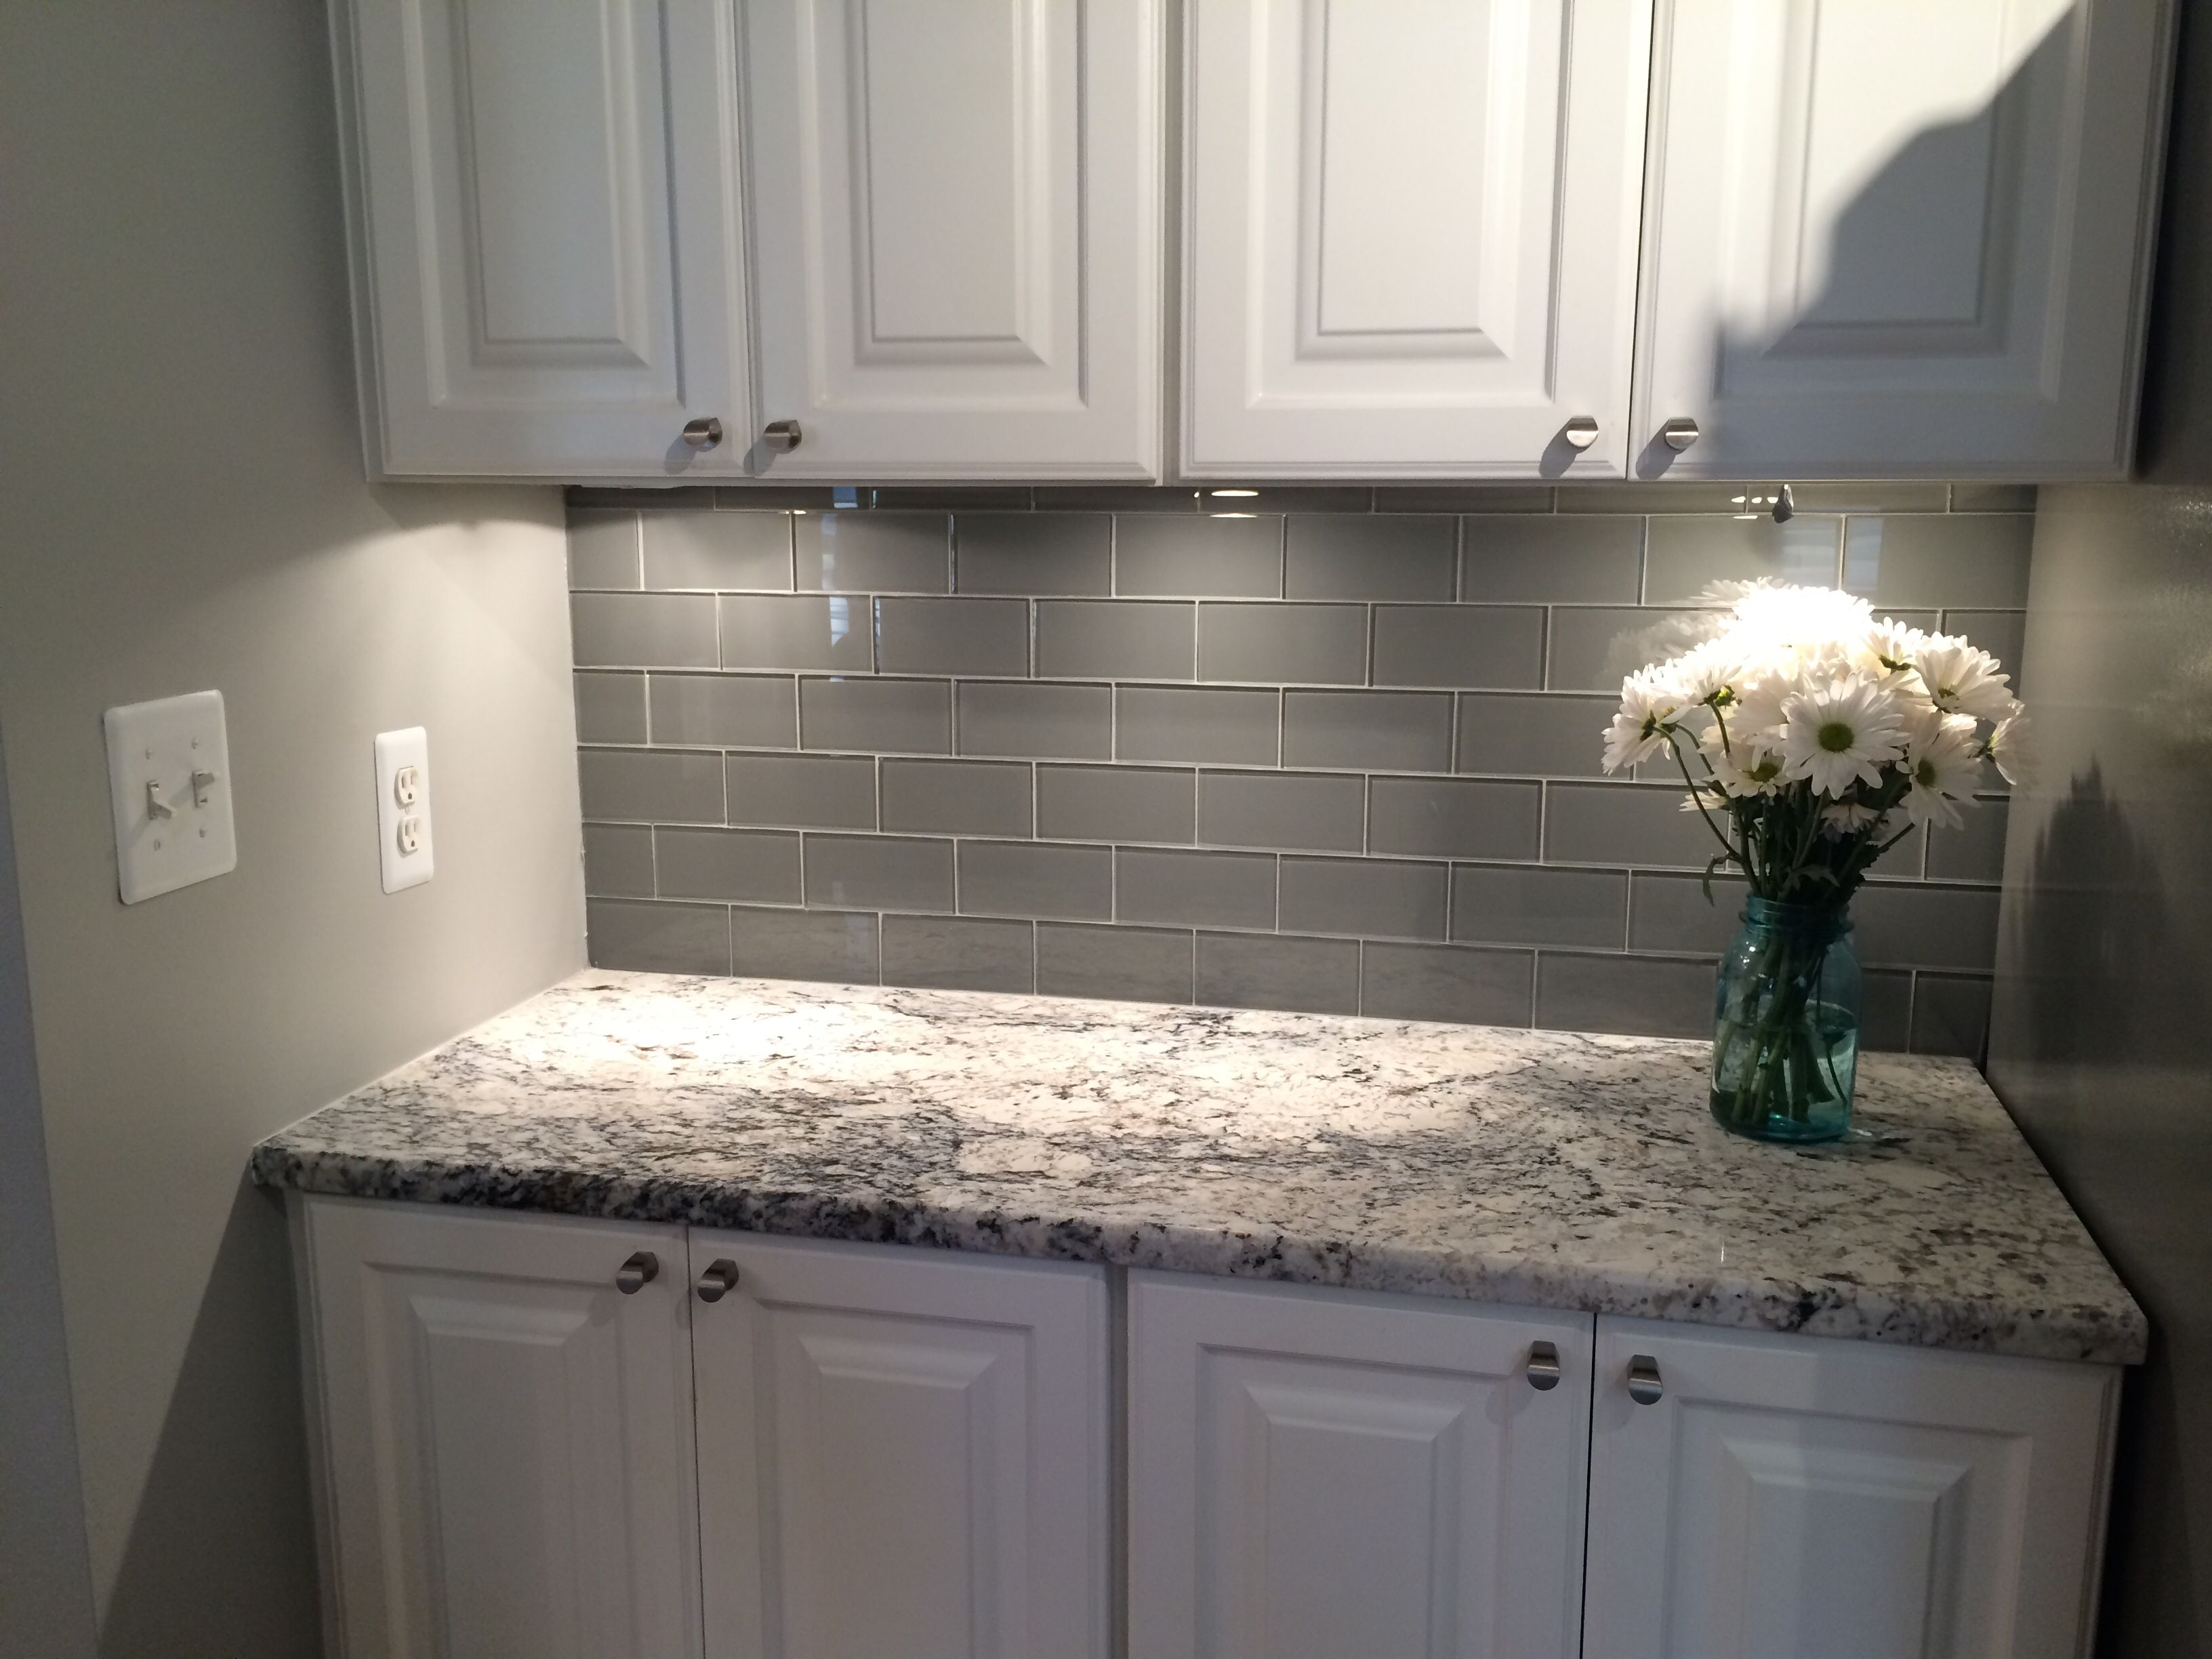 Grey Glass Subway Tile Backsplash And White Cabinet For Small Space ...